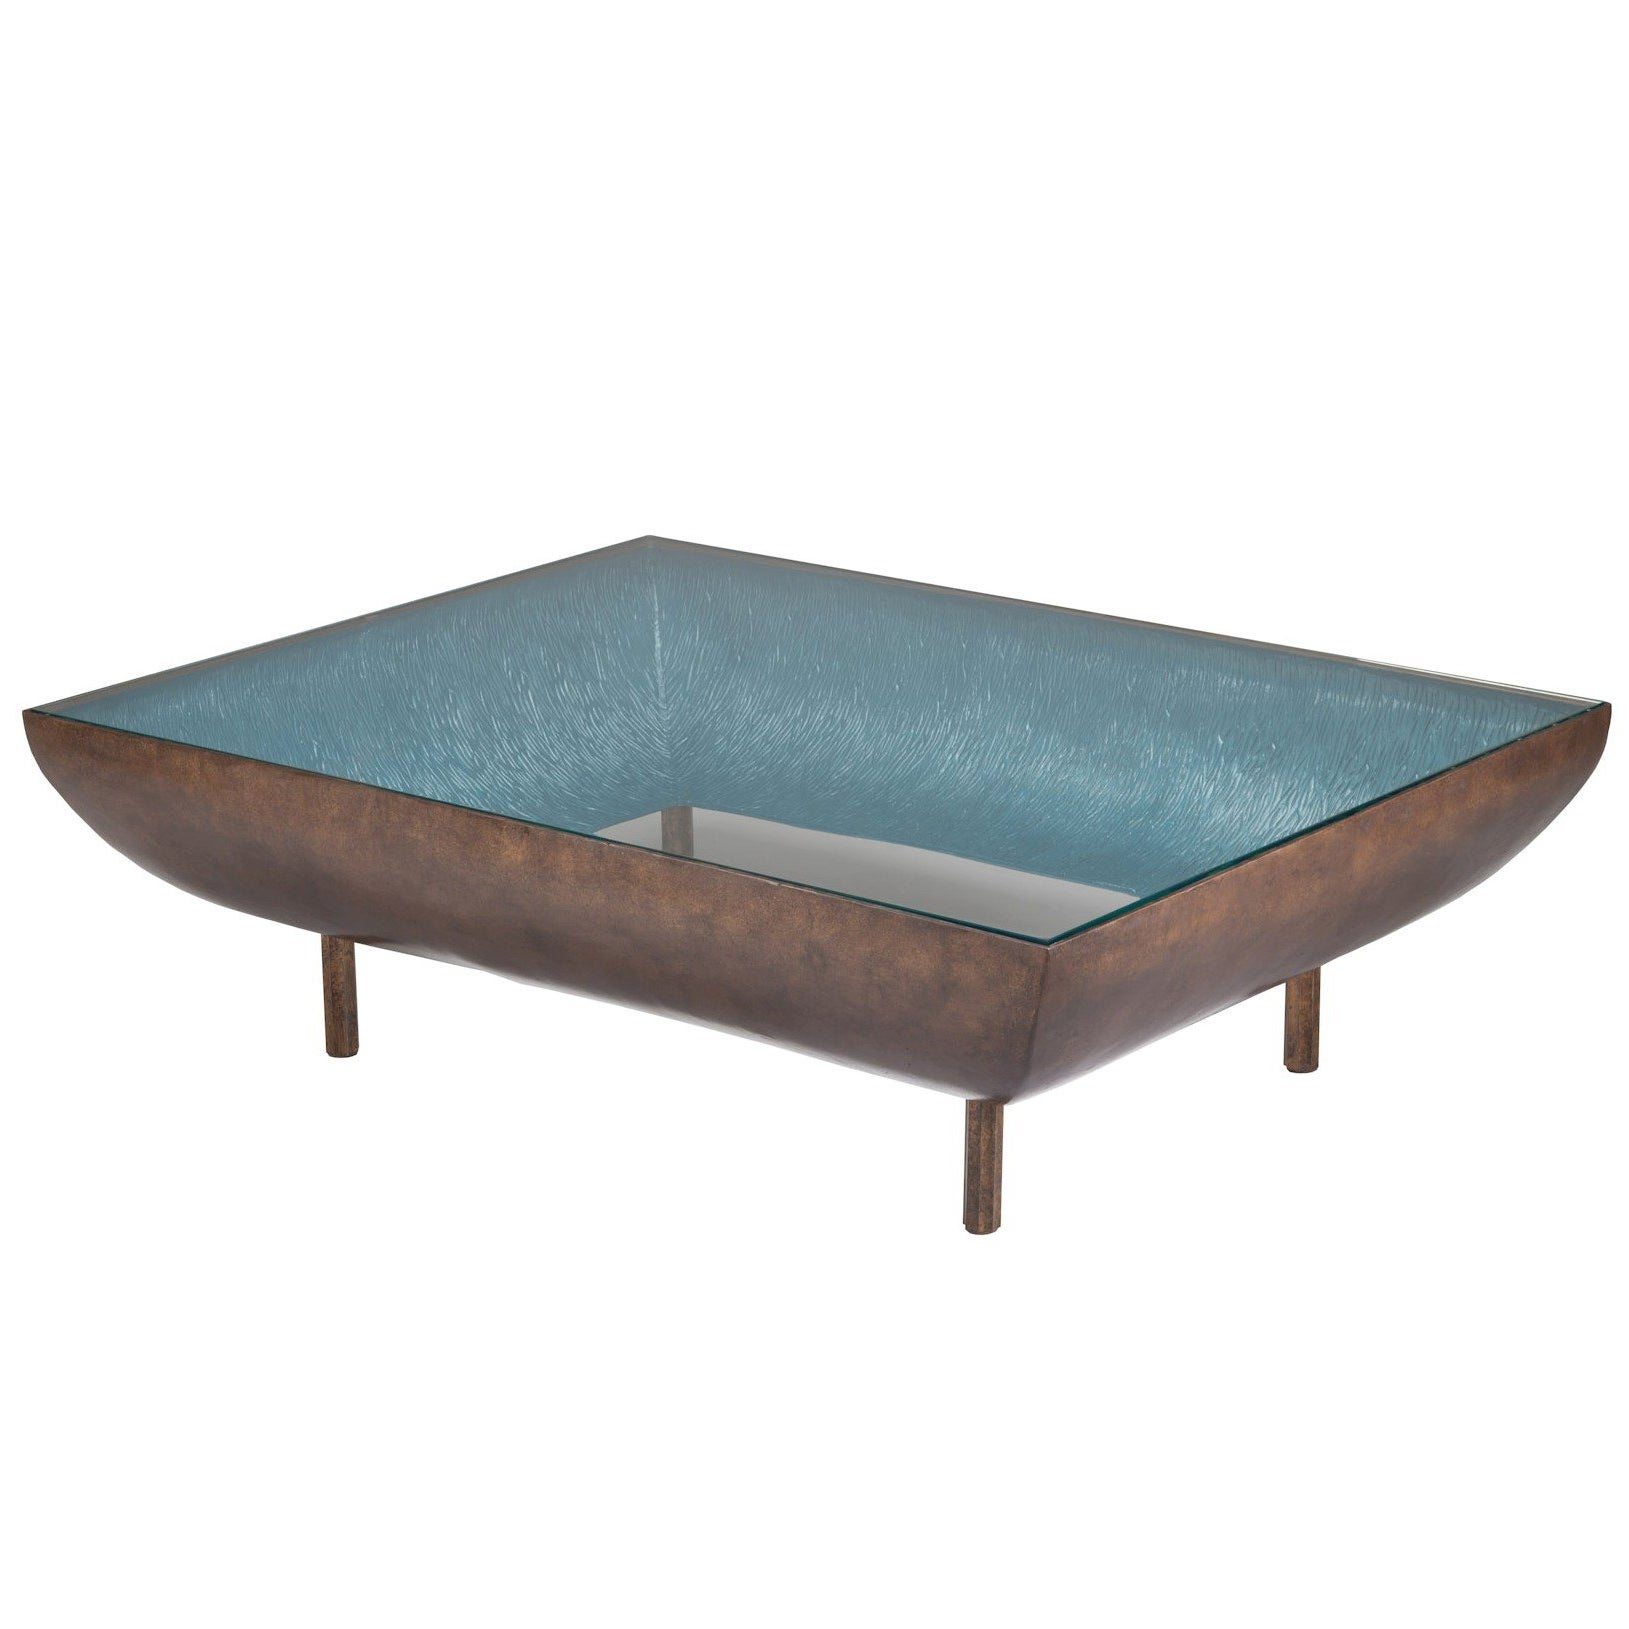 Anthony Coffee Table By Francis Sultana, Bronze, Glass For Sale